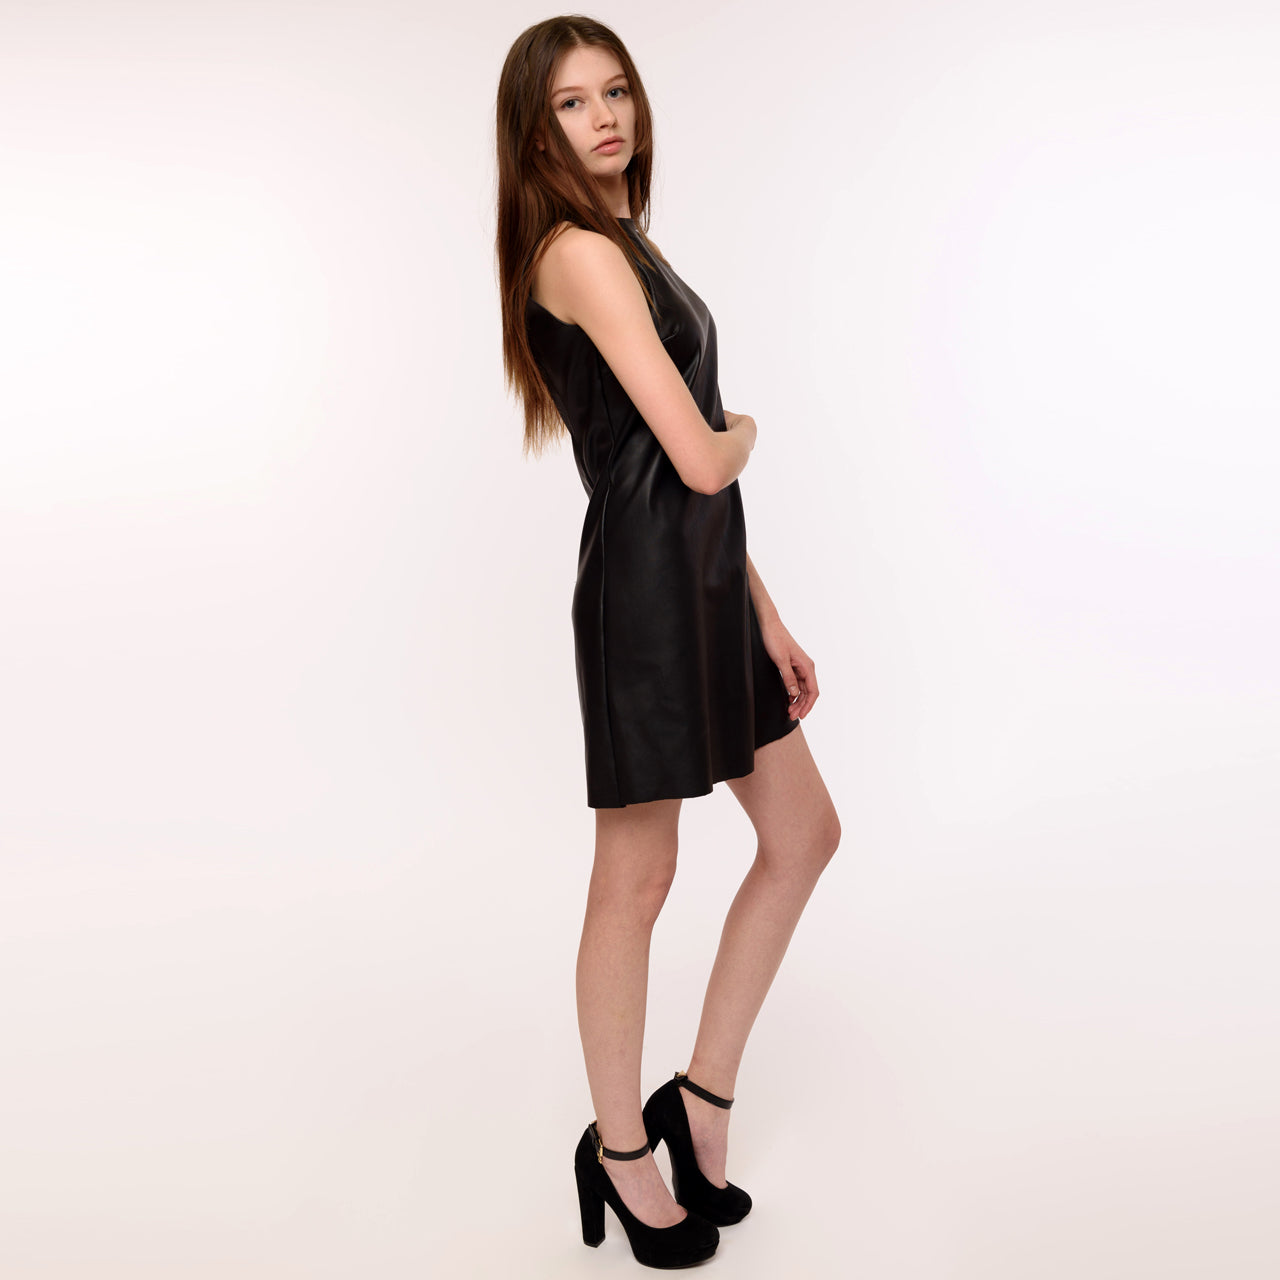 East Coast Couture presents this fine, vegan friendly, faux leather shift dress, perfect for modeling or an evening out.